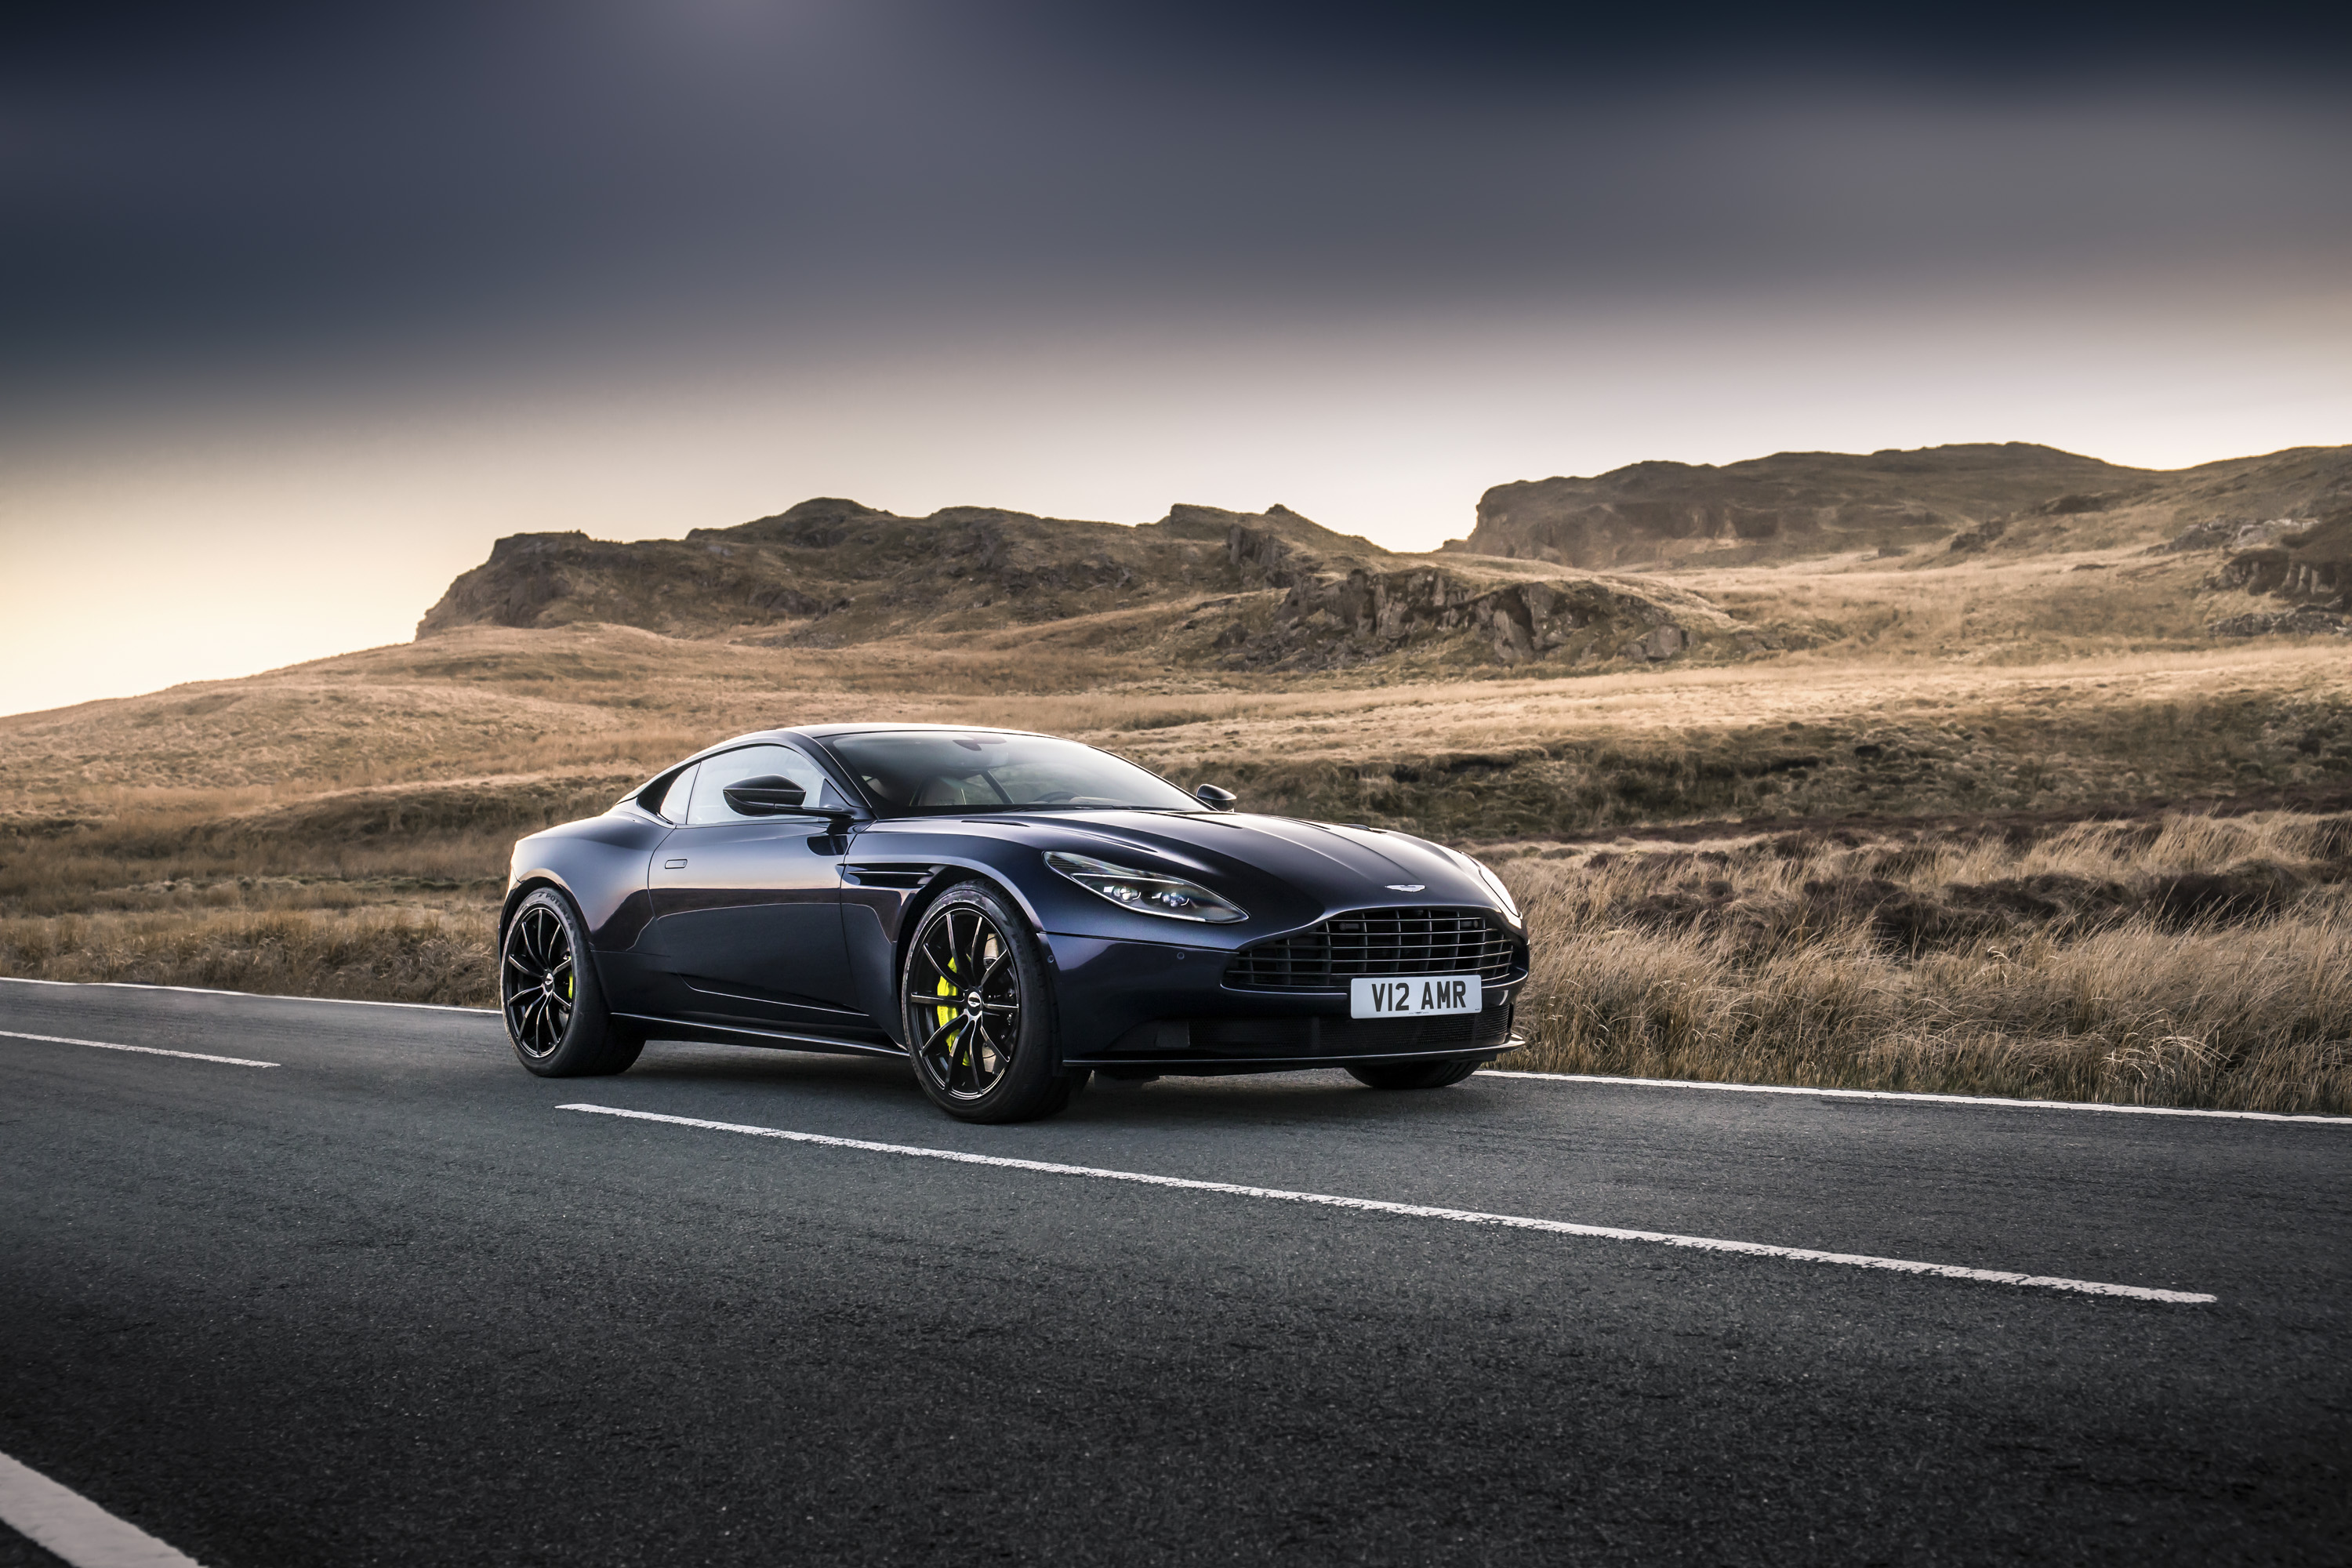 2019 Aston Martin Db11 Amr Top Speed